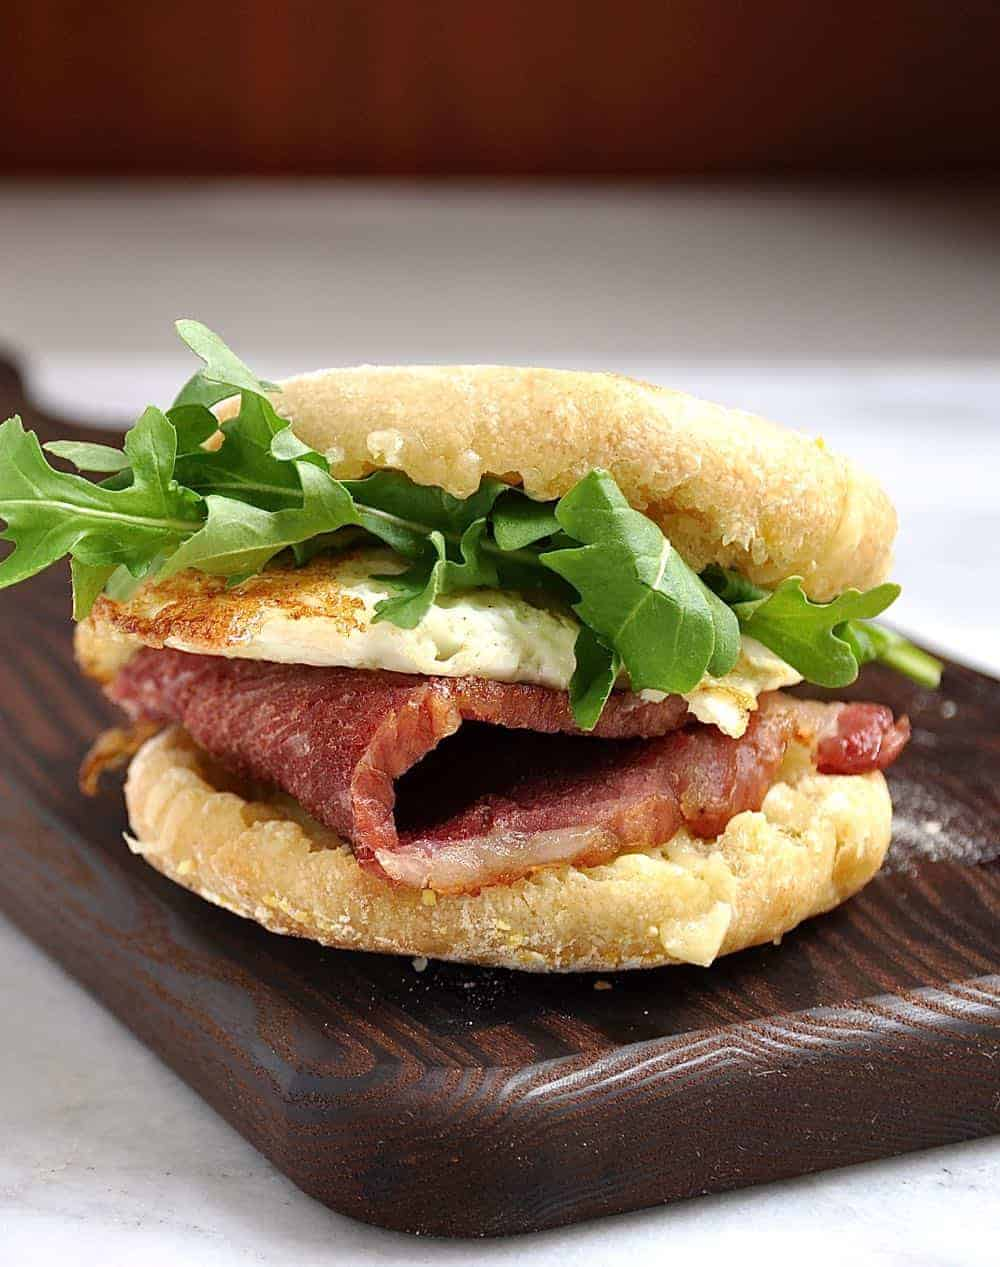 English Muffin Breakfast Sandwich ready to eat